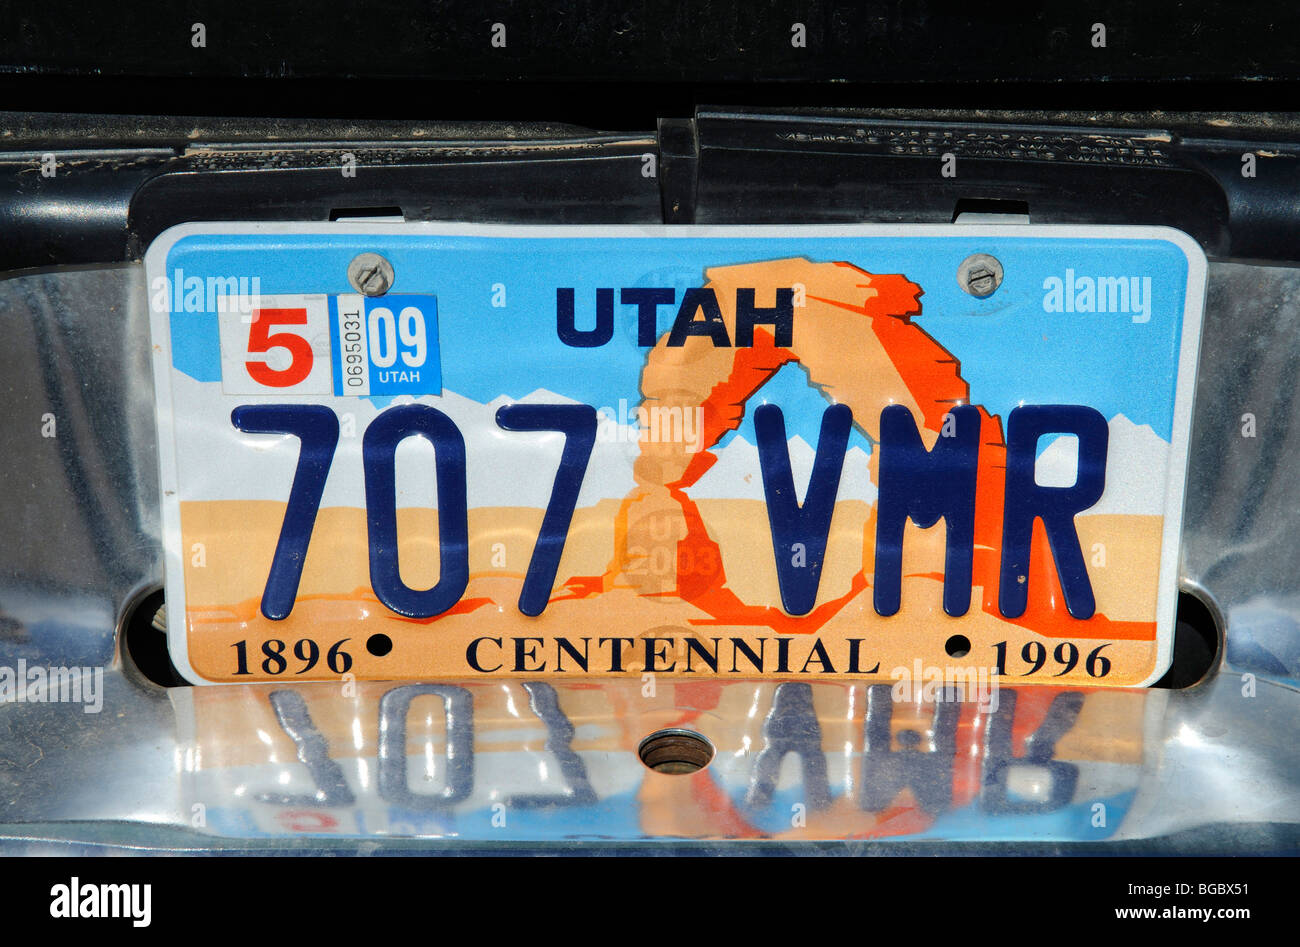 License plate, Utah, USA - Stock Image